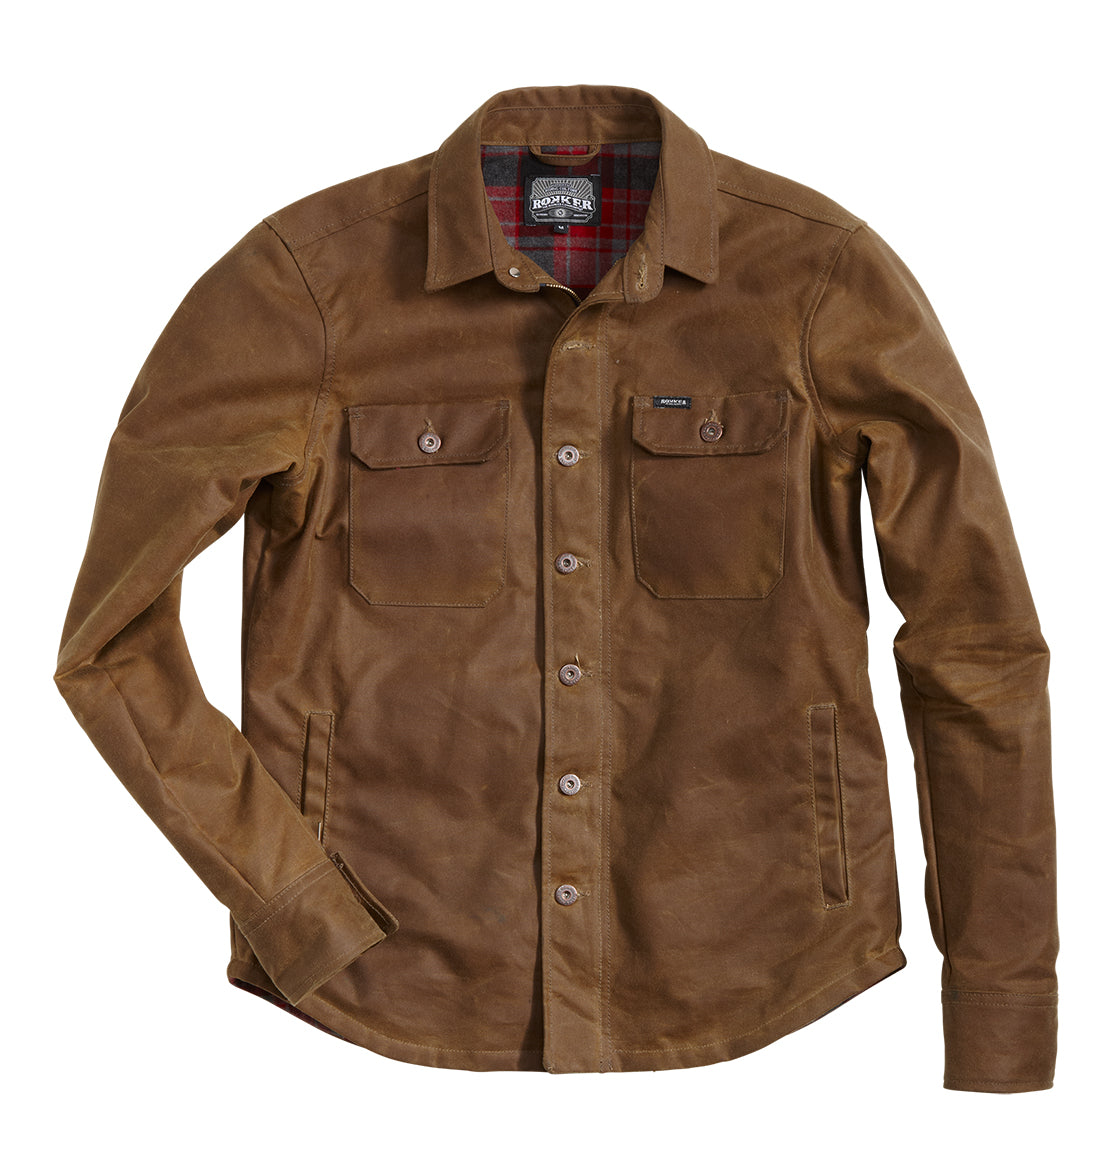 Rokker wax cotton overshirt